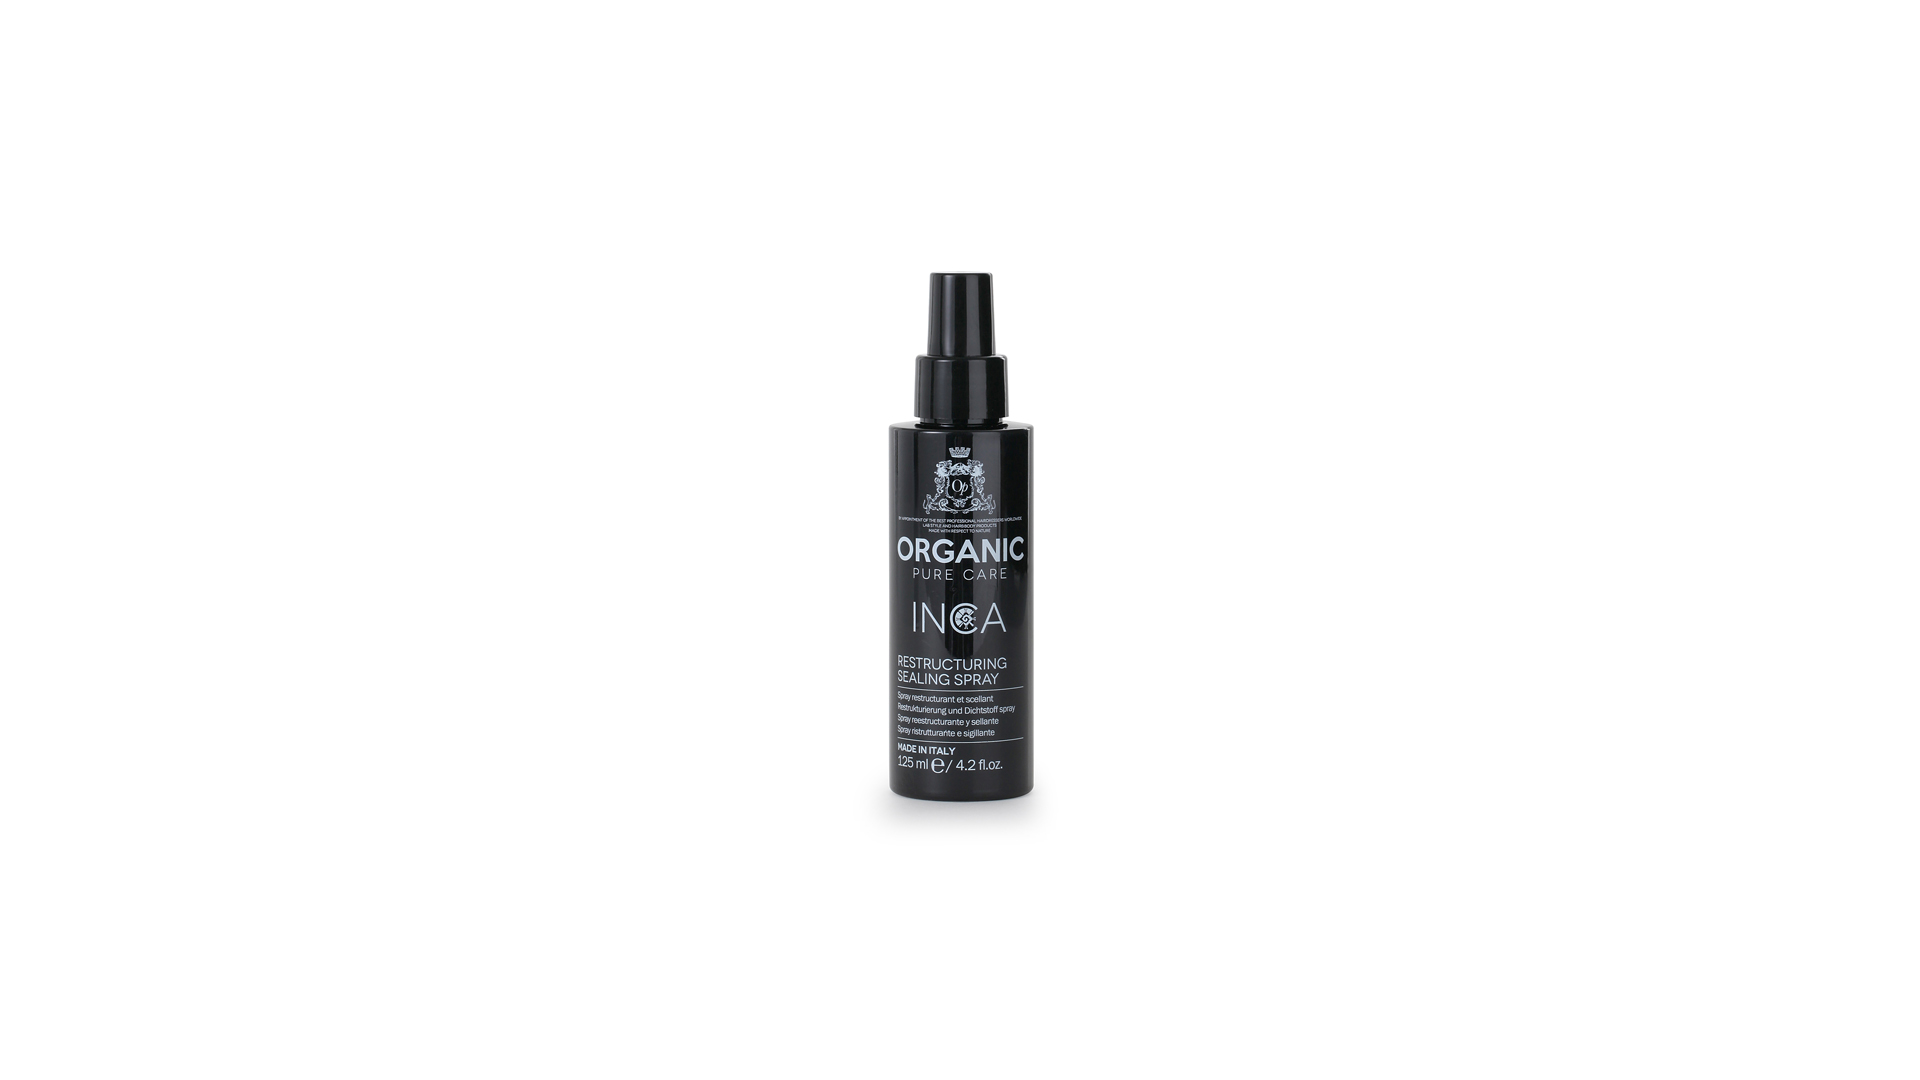 02_IncaRestructuringSealingSpray_125ml